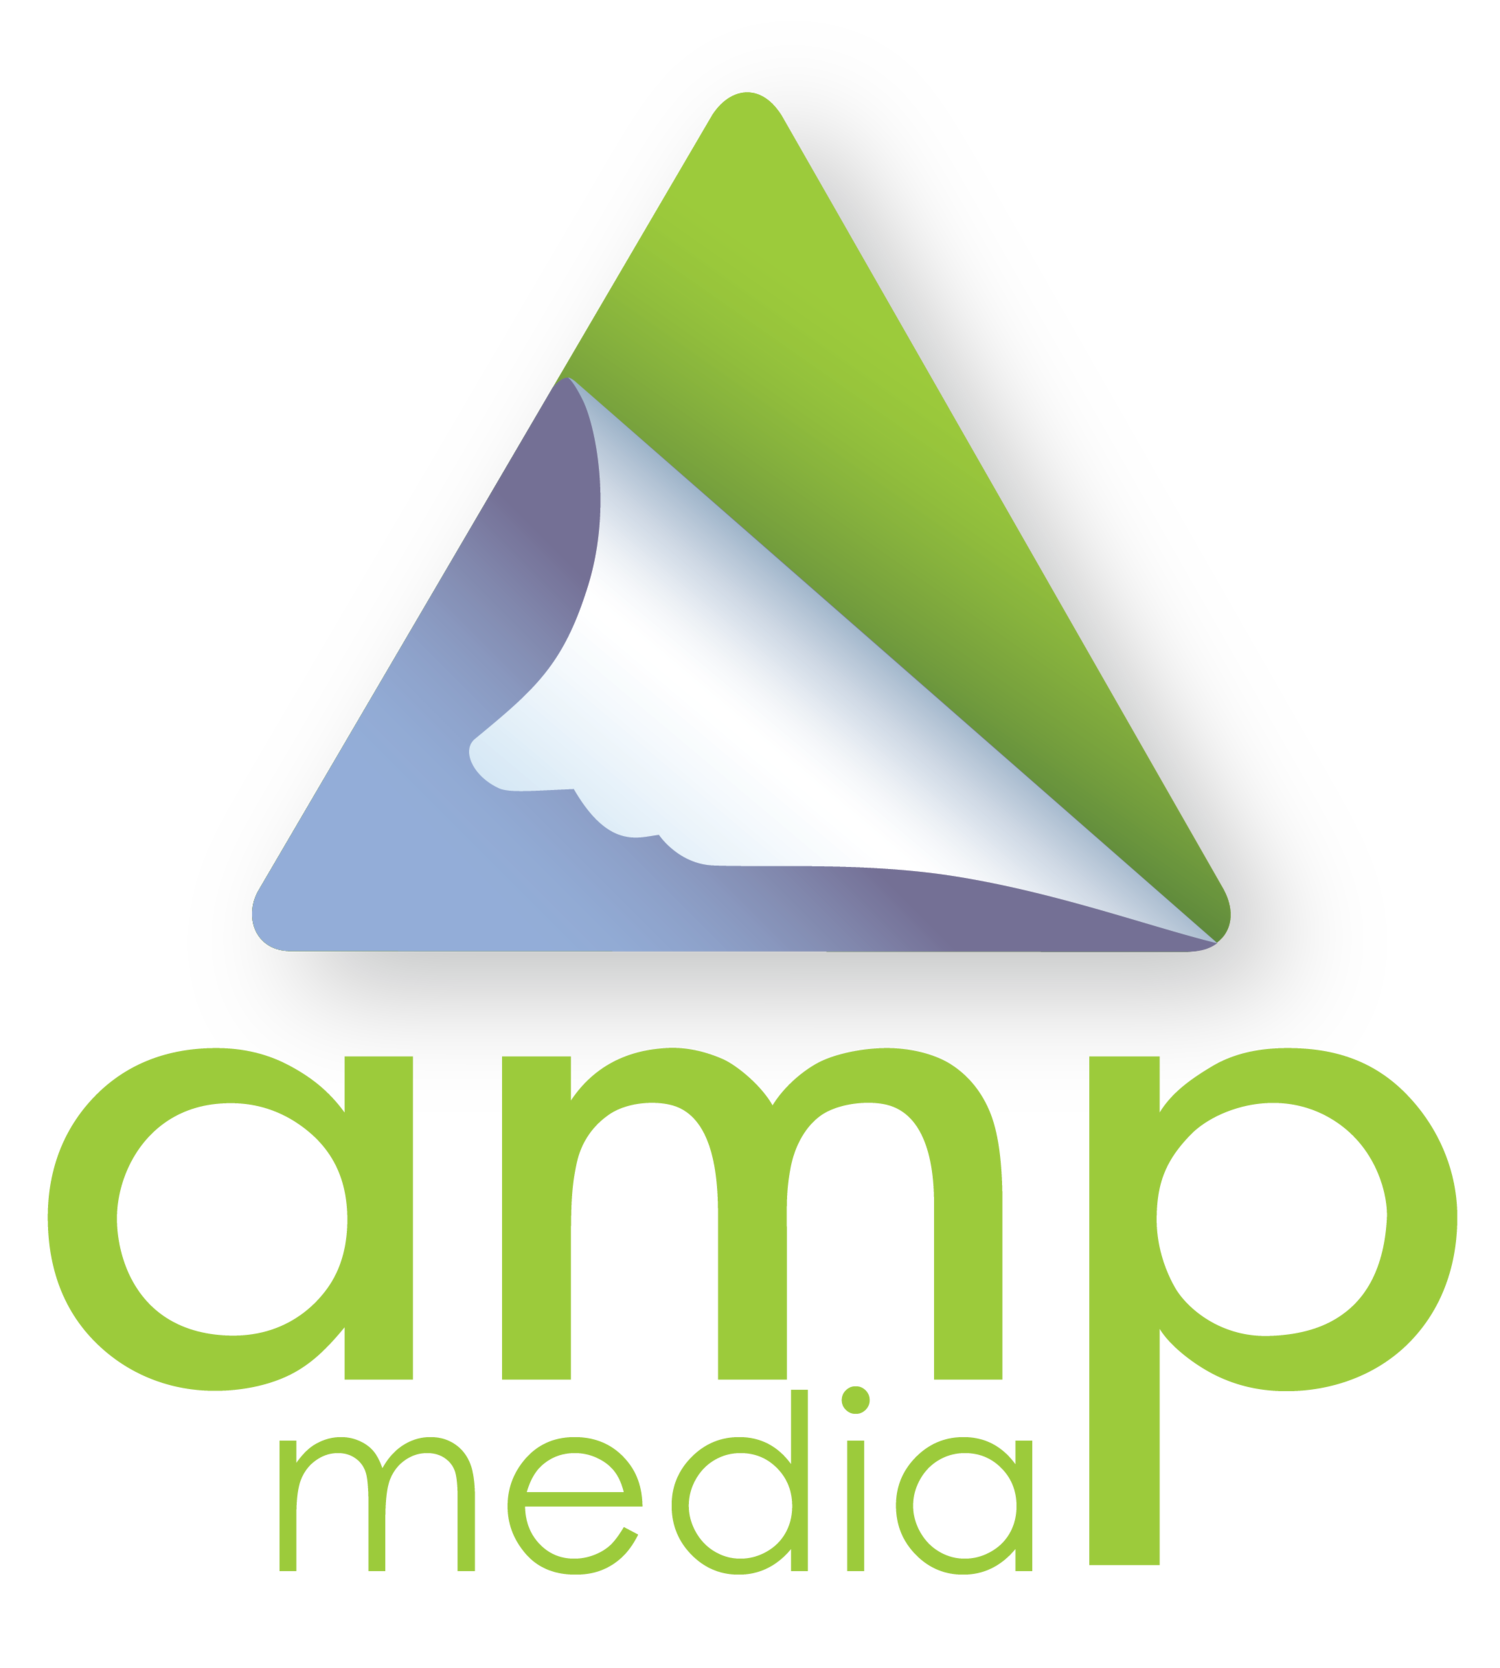 AMP - Access Monterey Peninsula, Inc.